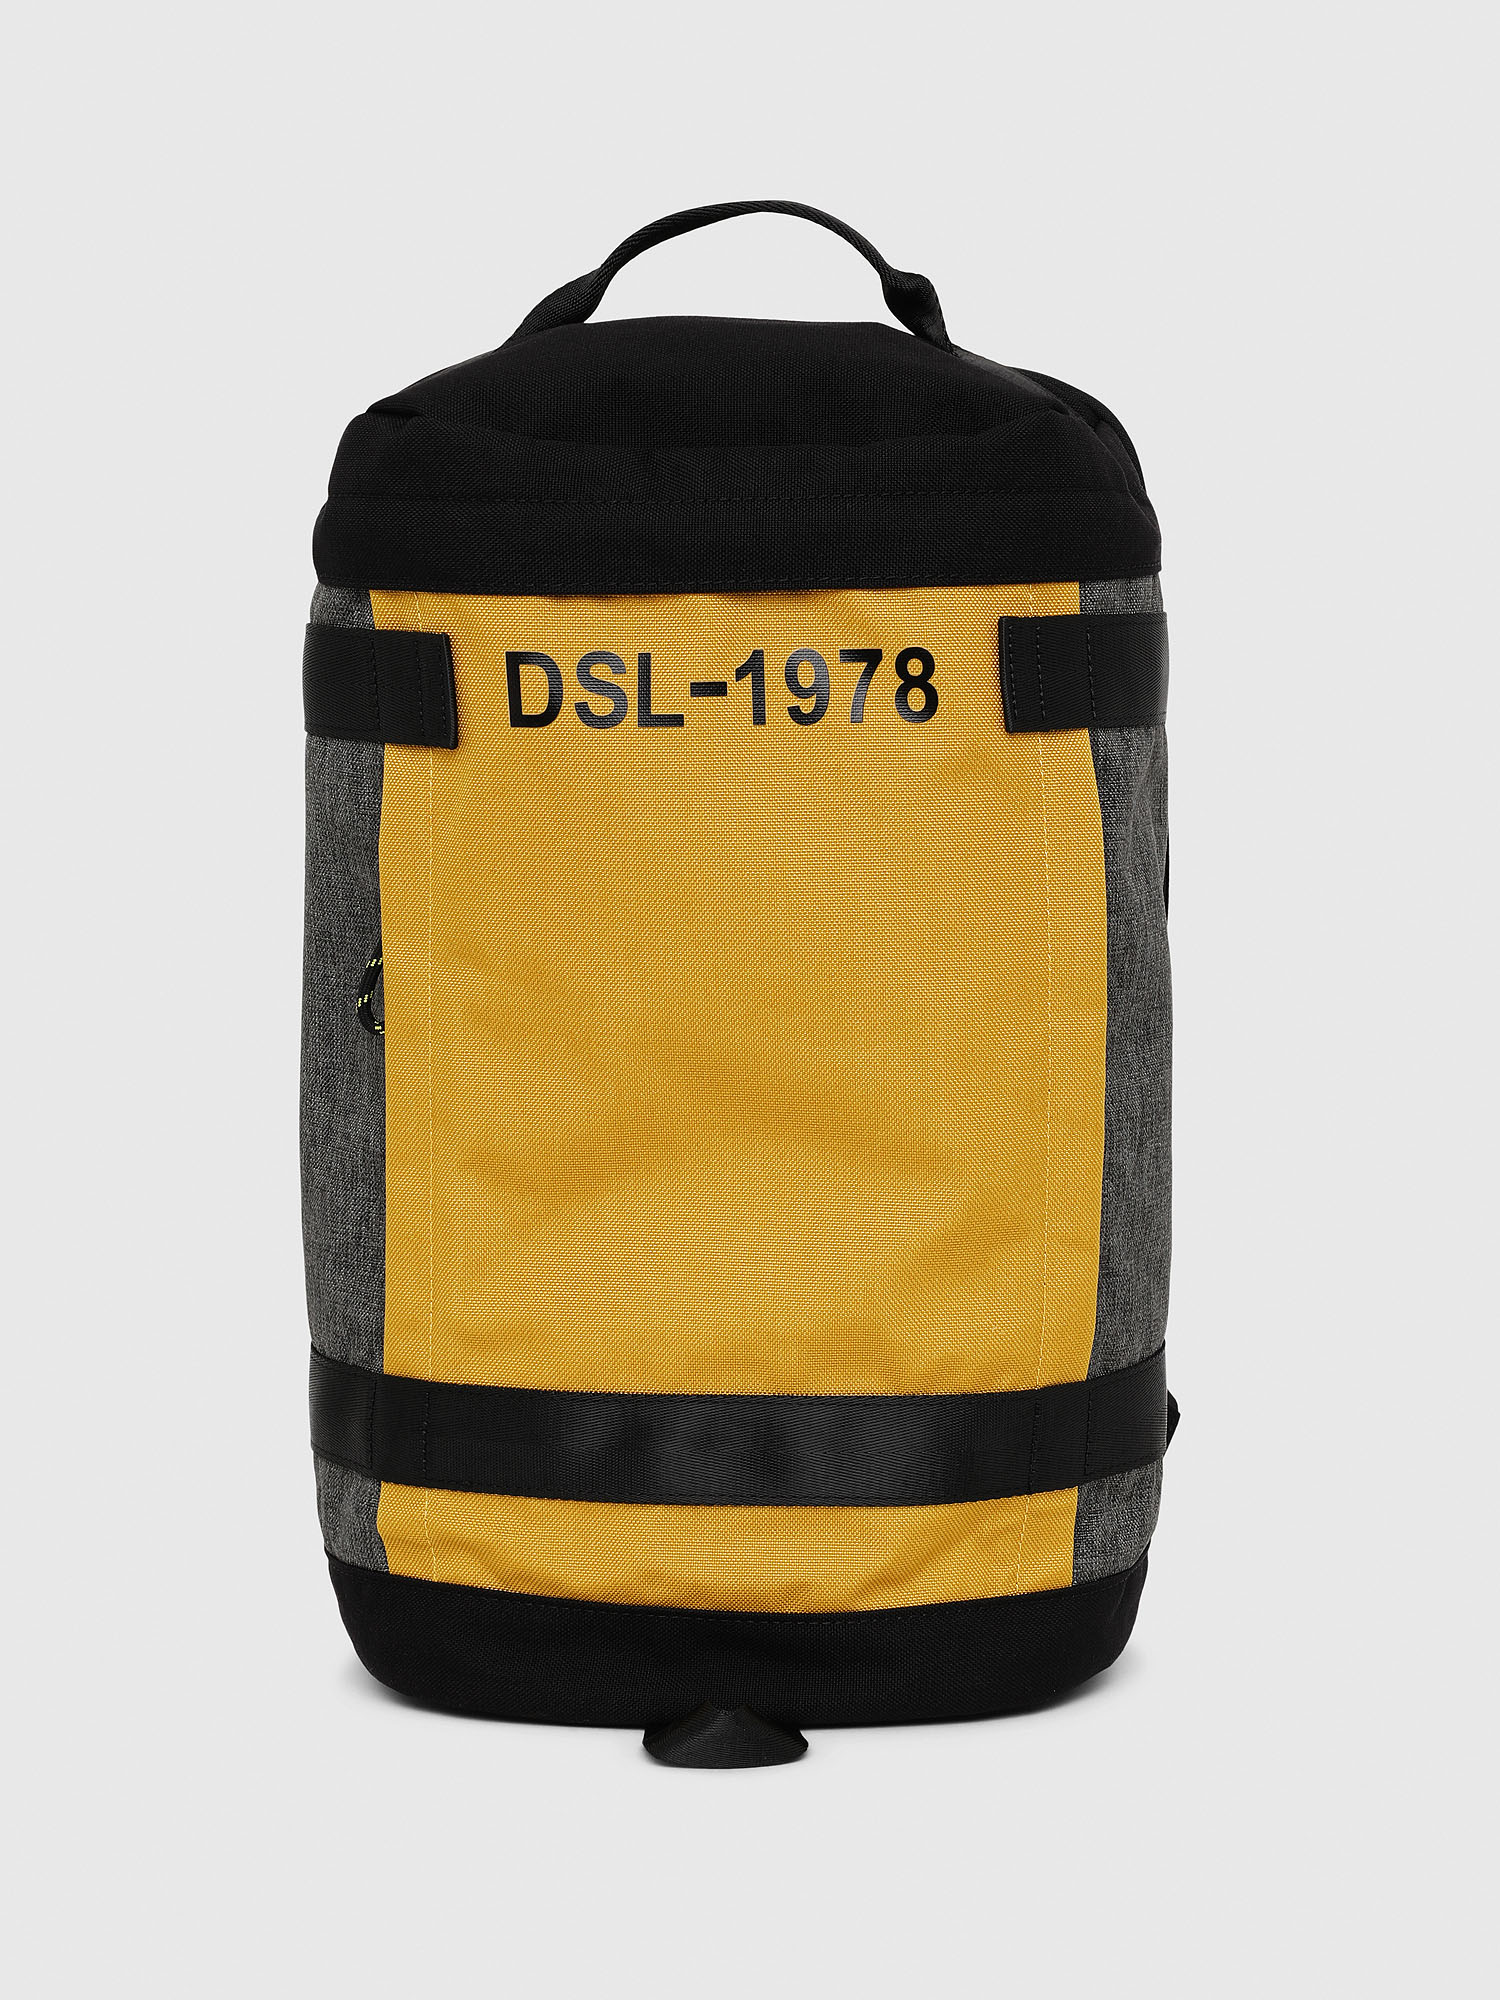 Diesel Backpacks P2676 - Black